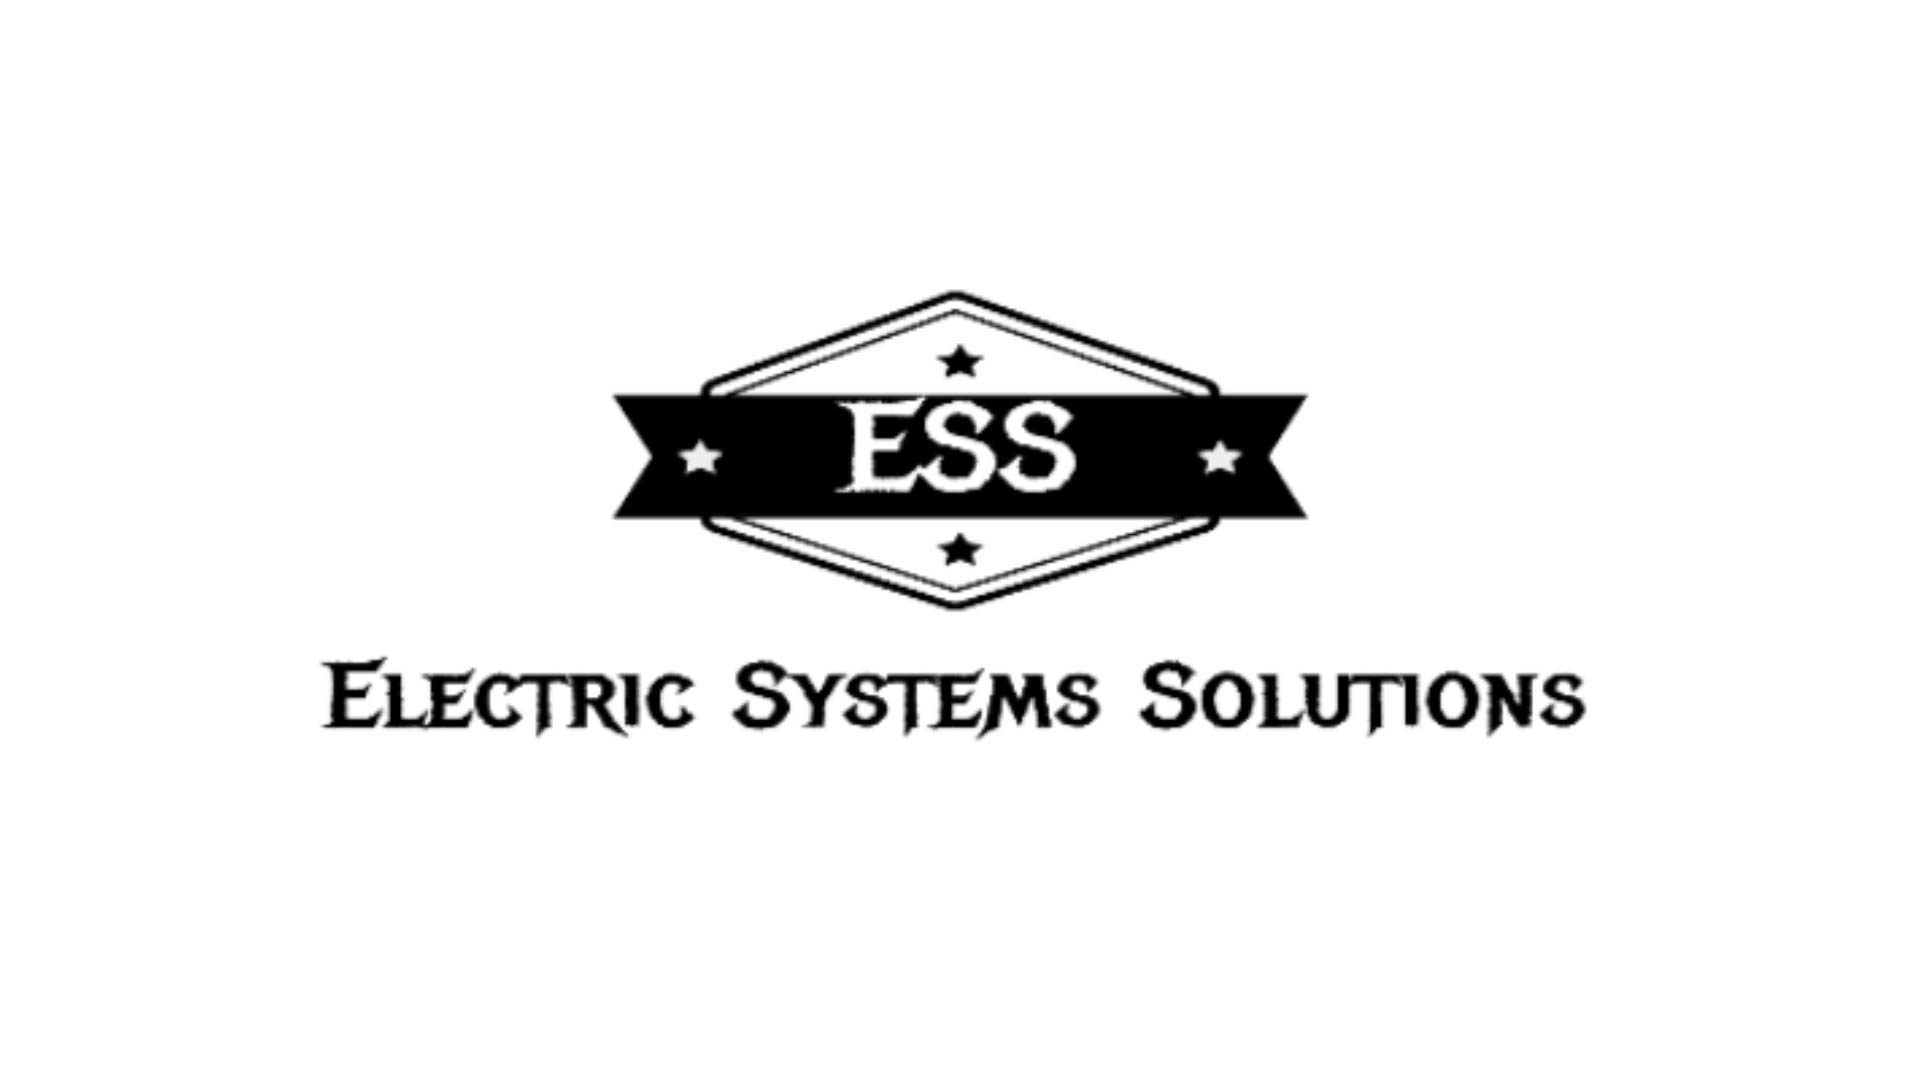 Electric Systems Solutions